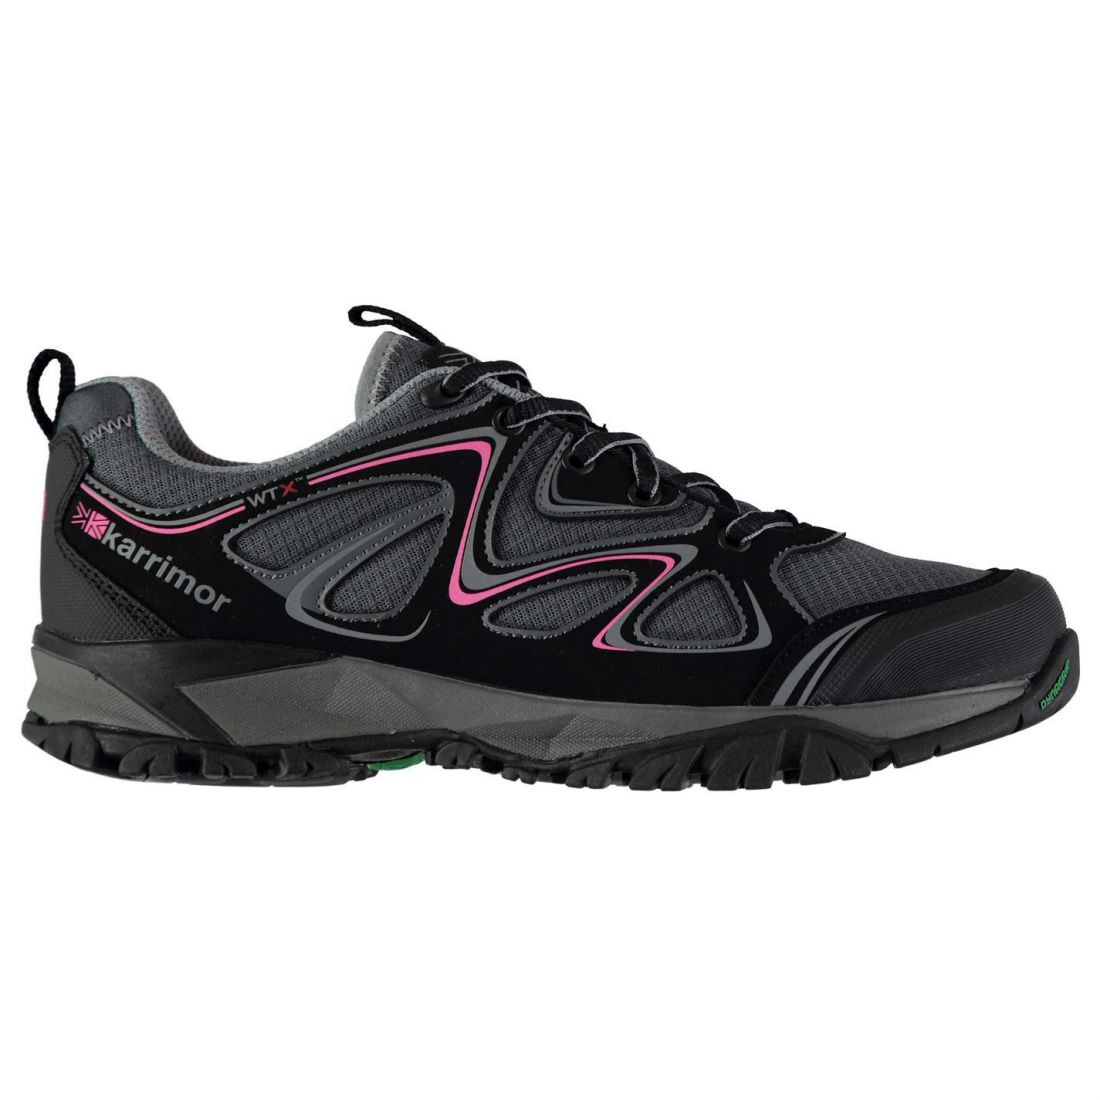 Karrimor Womens Surge WTX Waking shoes Waterproof Lace  Up Padded Ankle Collar  fashion